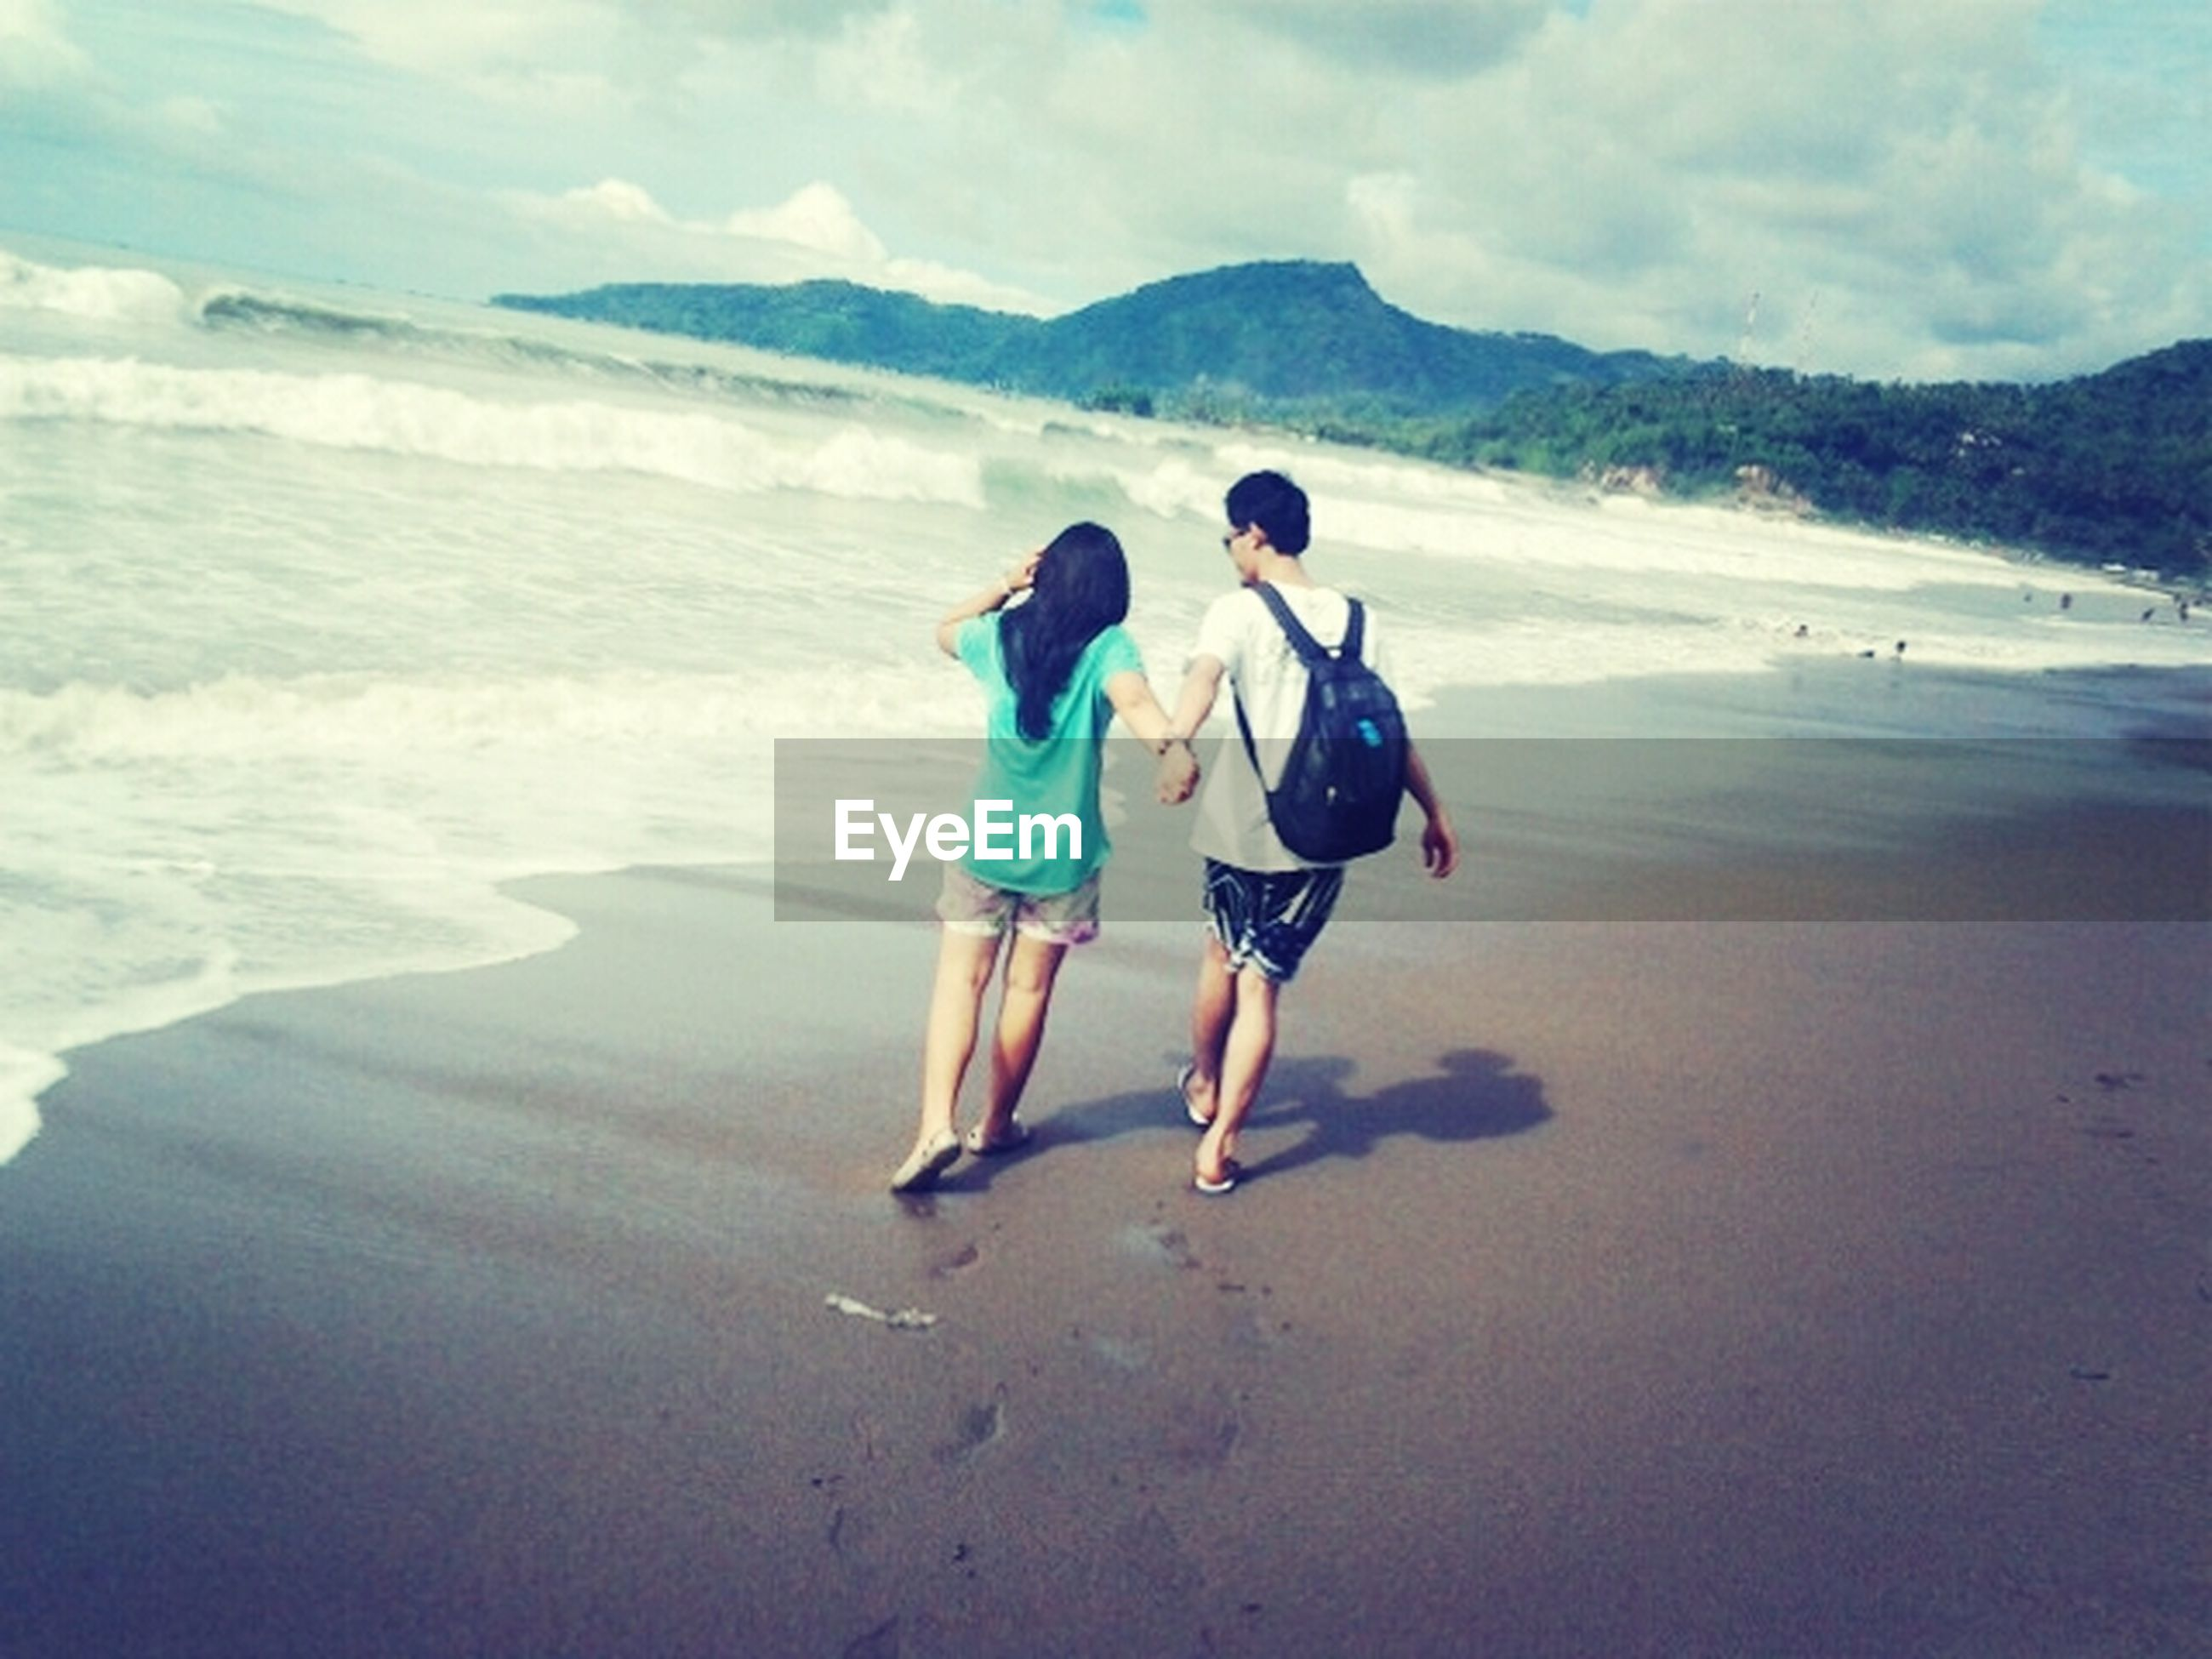 water, beach, leisure activity, lifestyles, sea, full length, vacations, sand, togetherness, sky, shore, boys, childhood, beauty in nature, nature, scenics, enjoyment, bonding